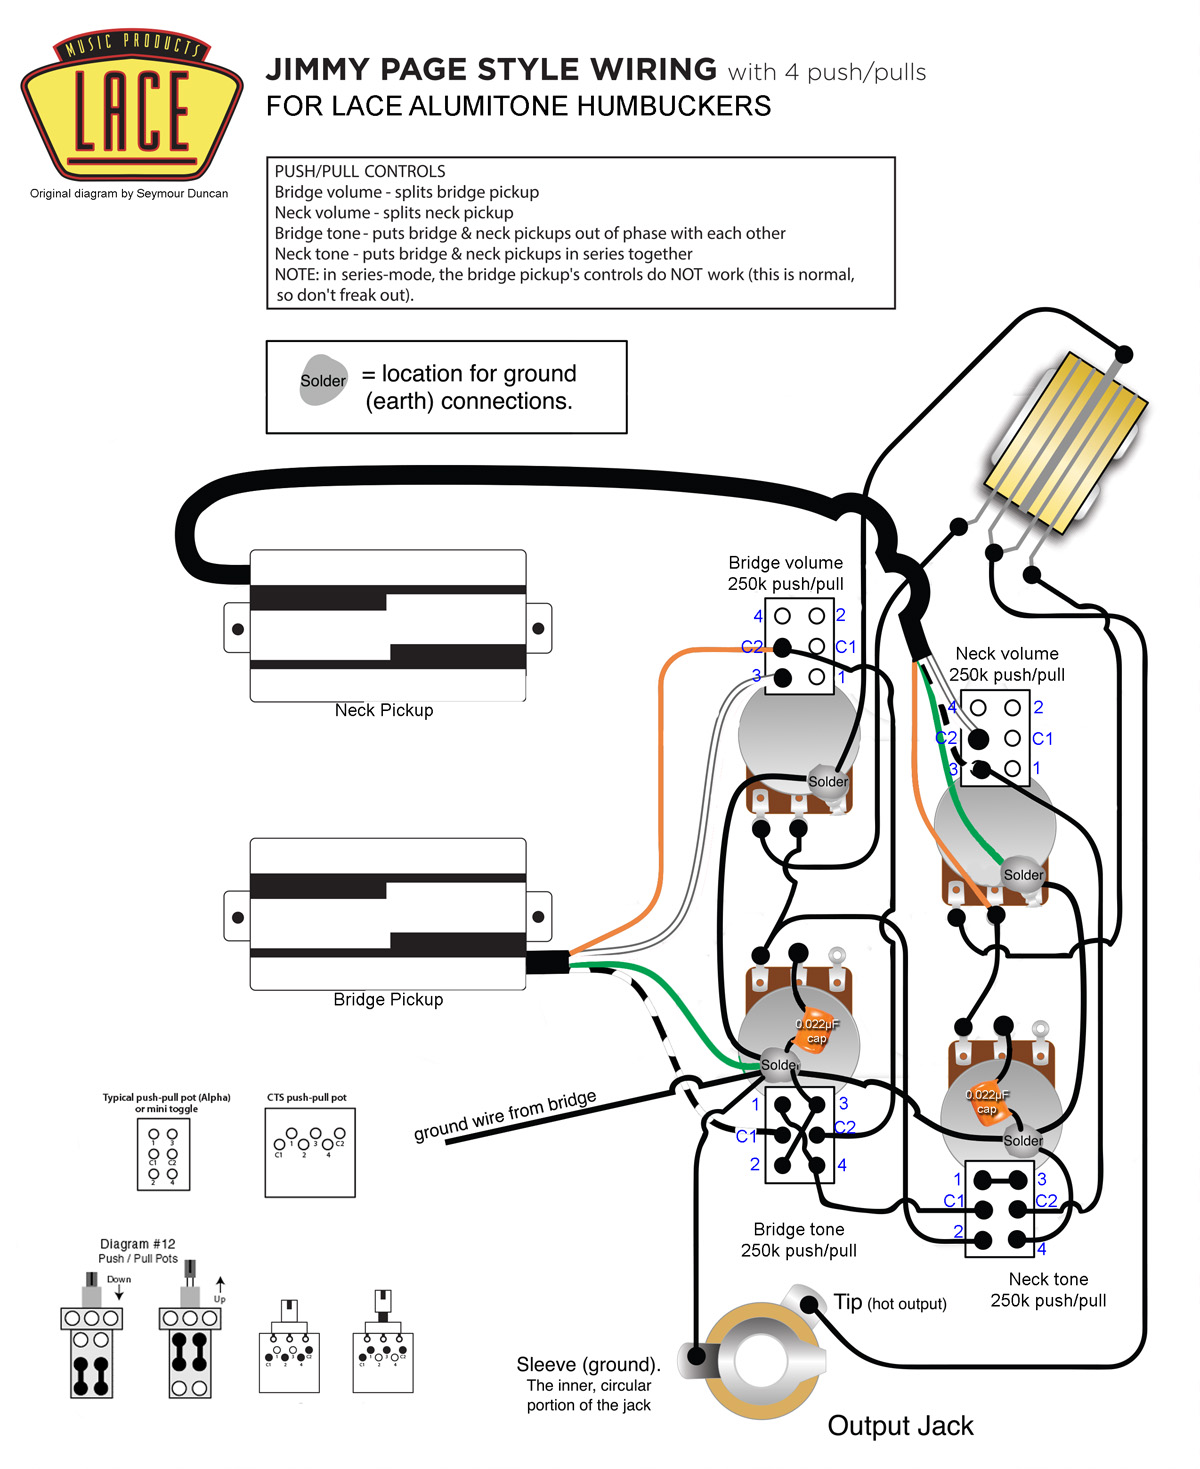 lace alumitone wiring wiring diagram forwardlace alumitone wiring wiring diagram gp lace alumitone humbucker wiring lace alumitone wiring